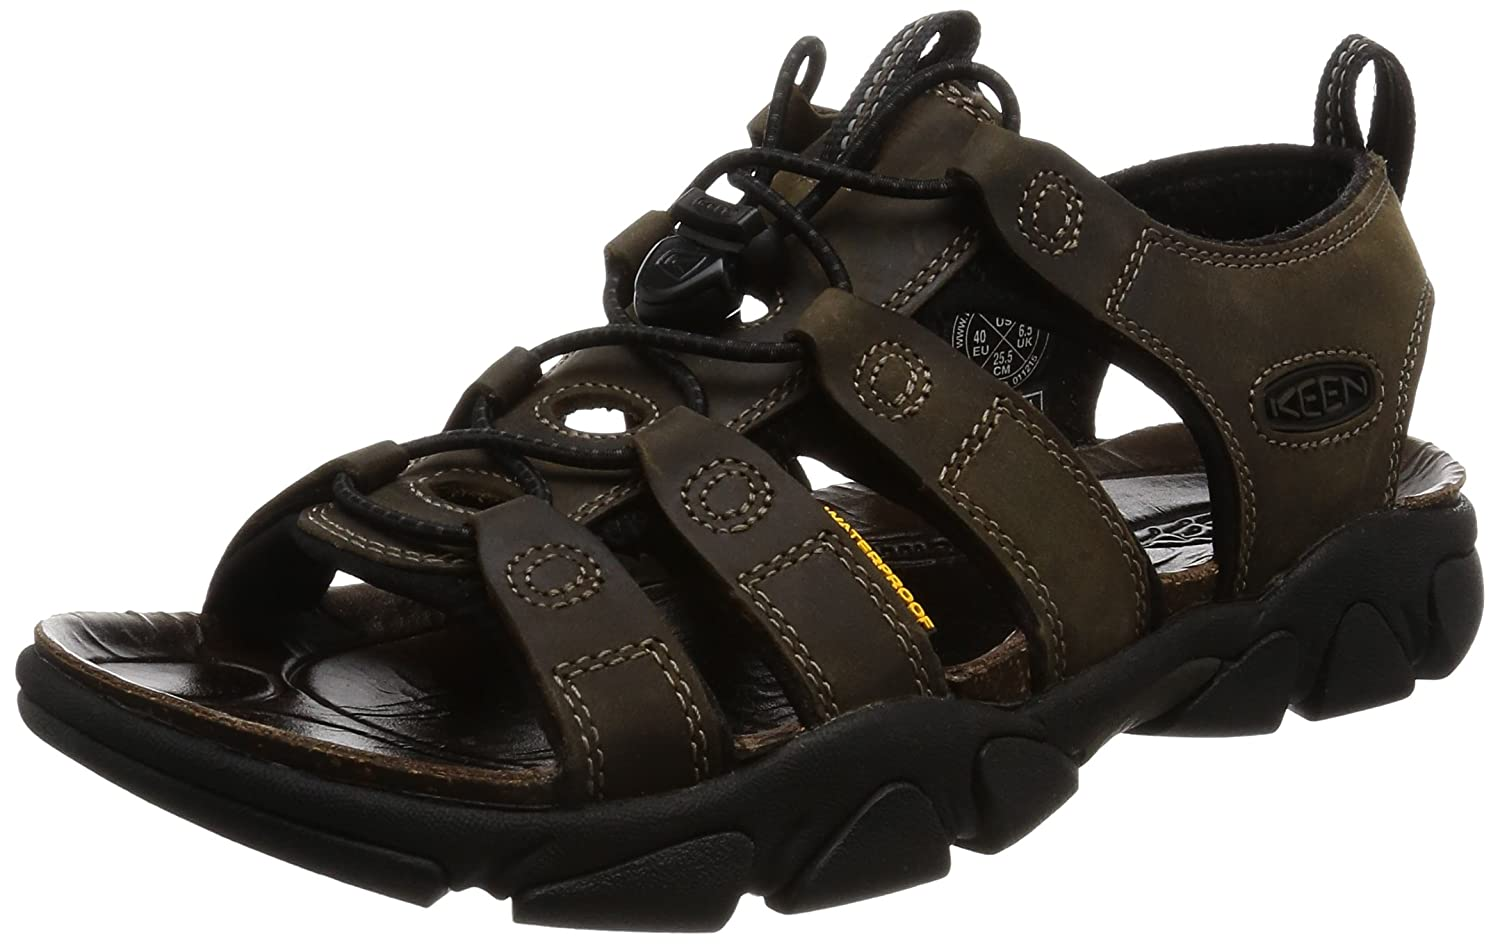 Keen Men's DAYTONA Sandals 1003032